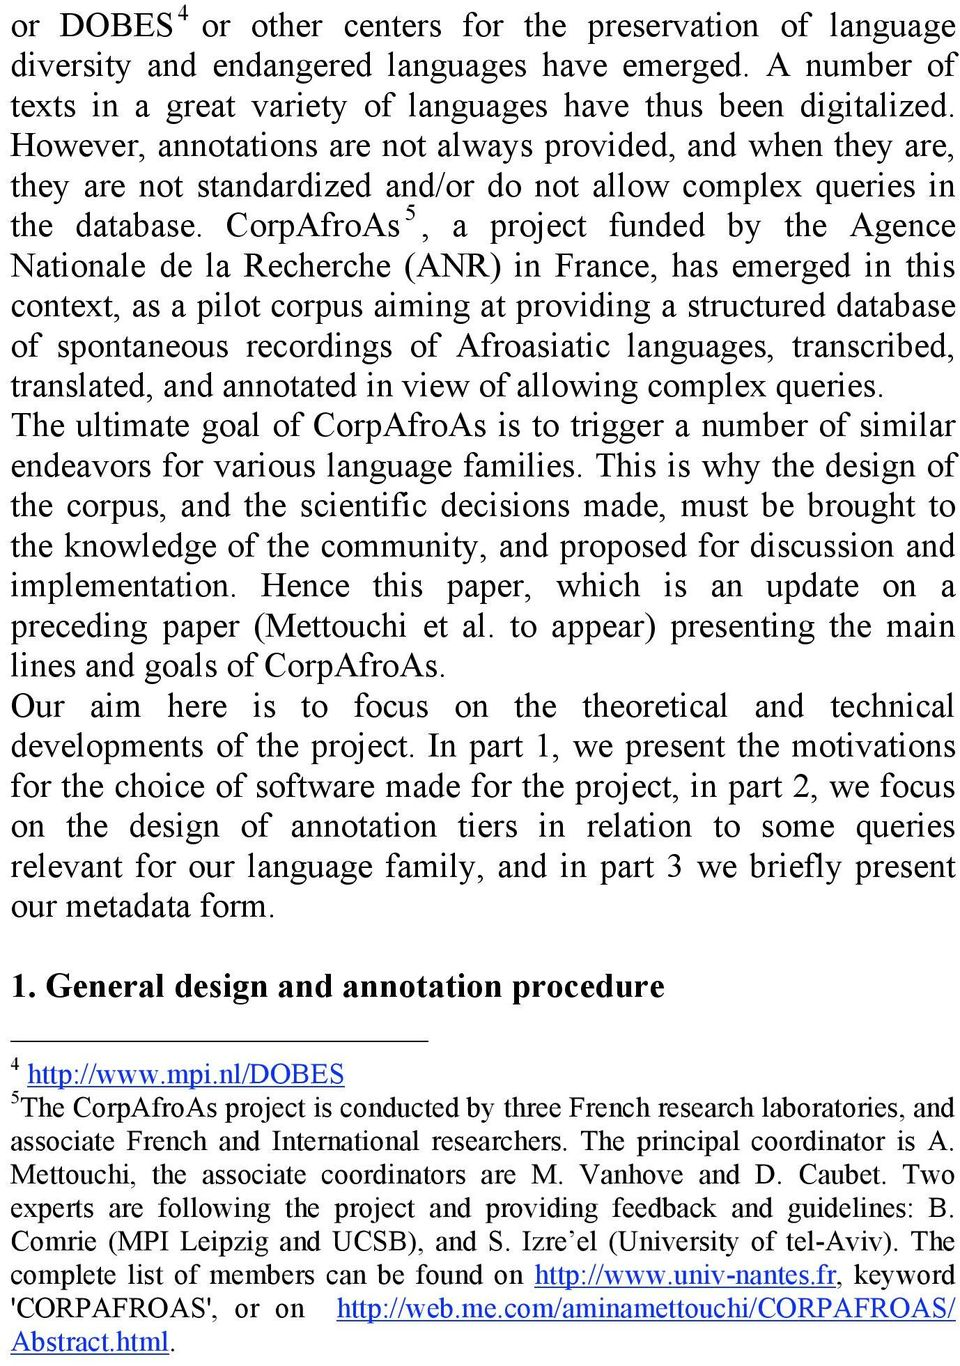 CorpAfroAs 5, a project funded by the Agence Nationale de la Recherche (ANR) in France, has emerged in this context, as a pilot corpus aiming at providing a structured database of spontaneous